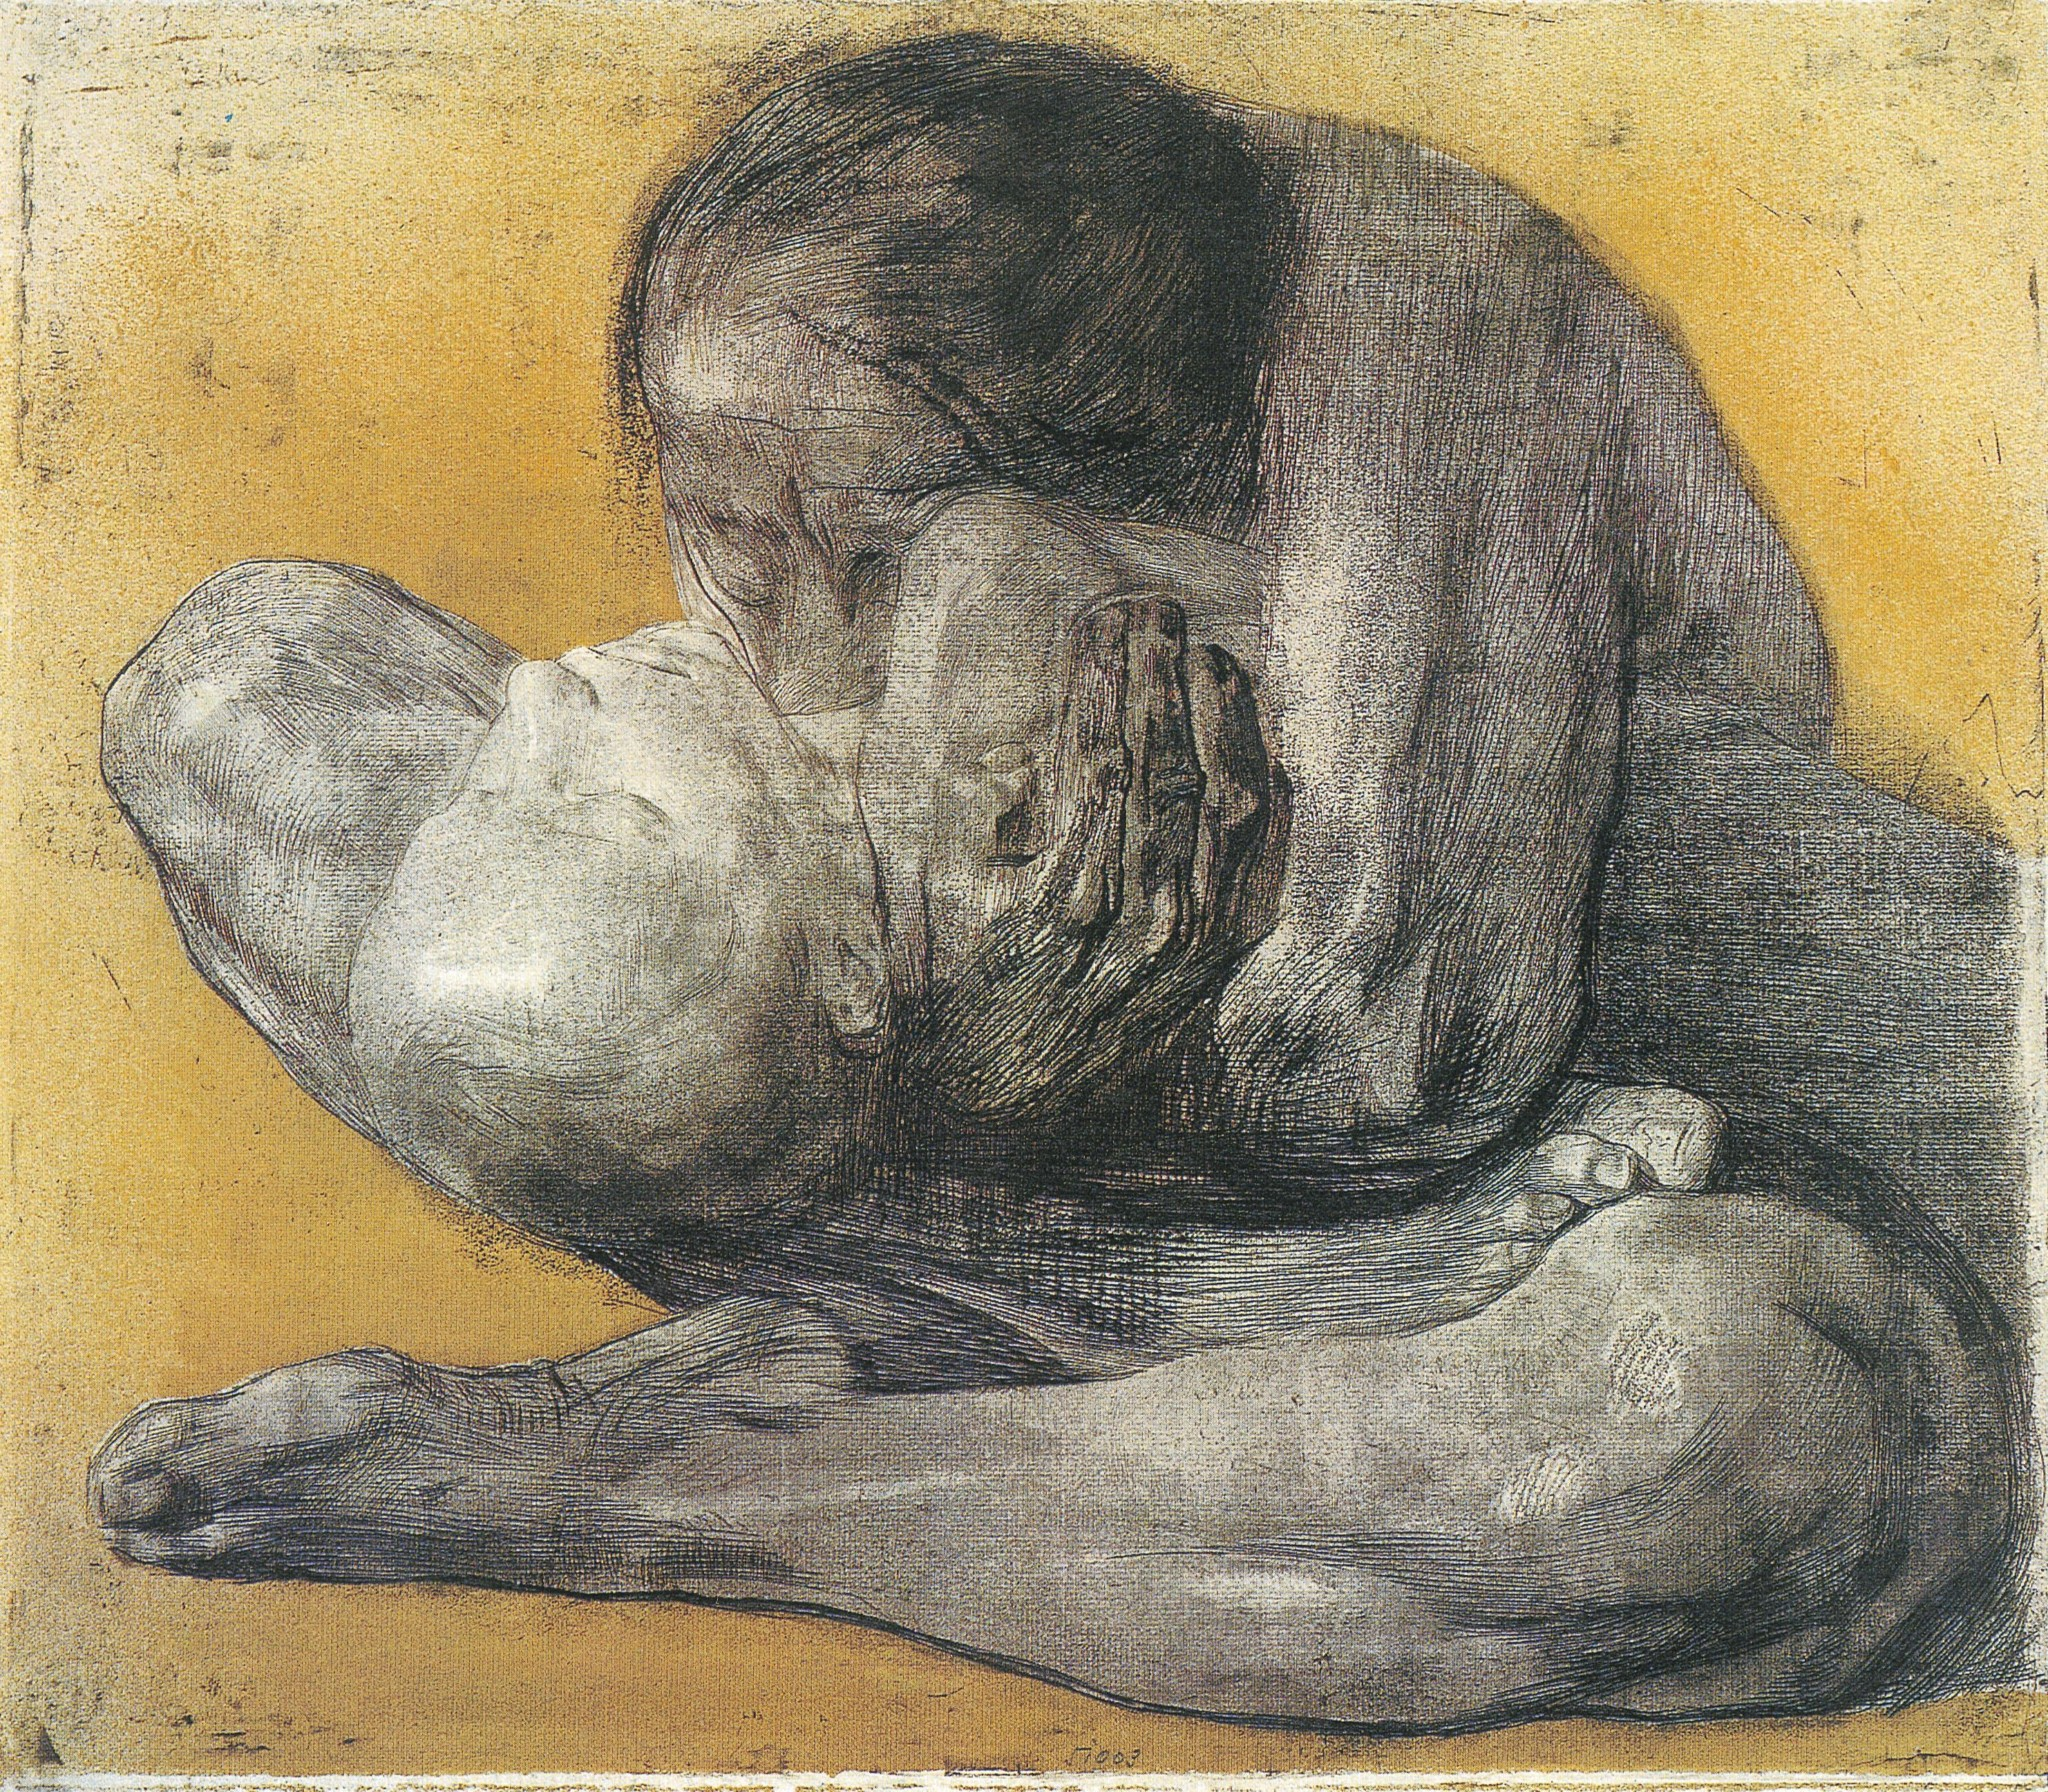 https://en.wikipedia.org/wiki/Käthe_Kollwitz#/media/File:Kollwitz.jpg